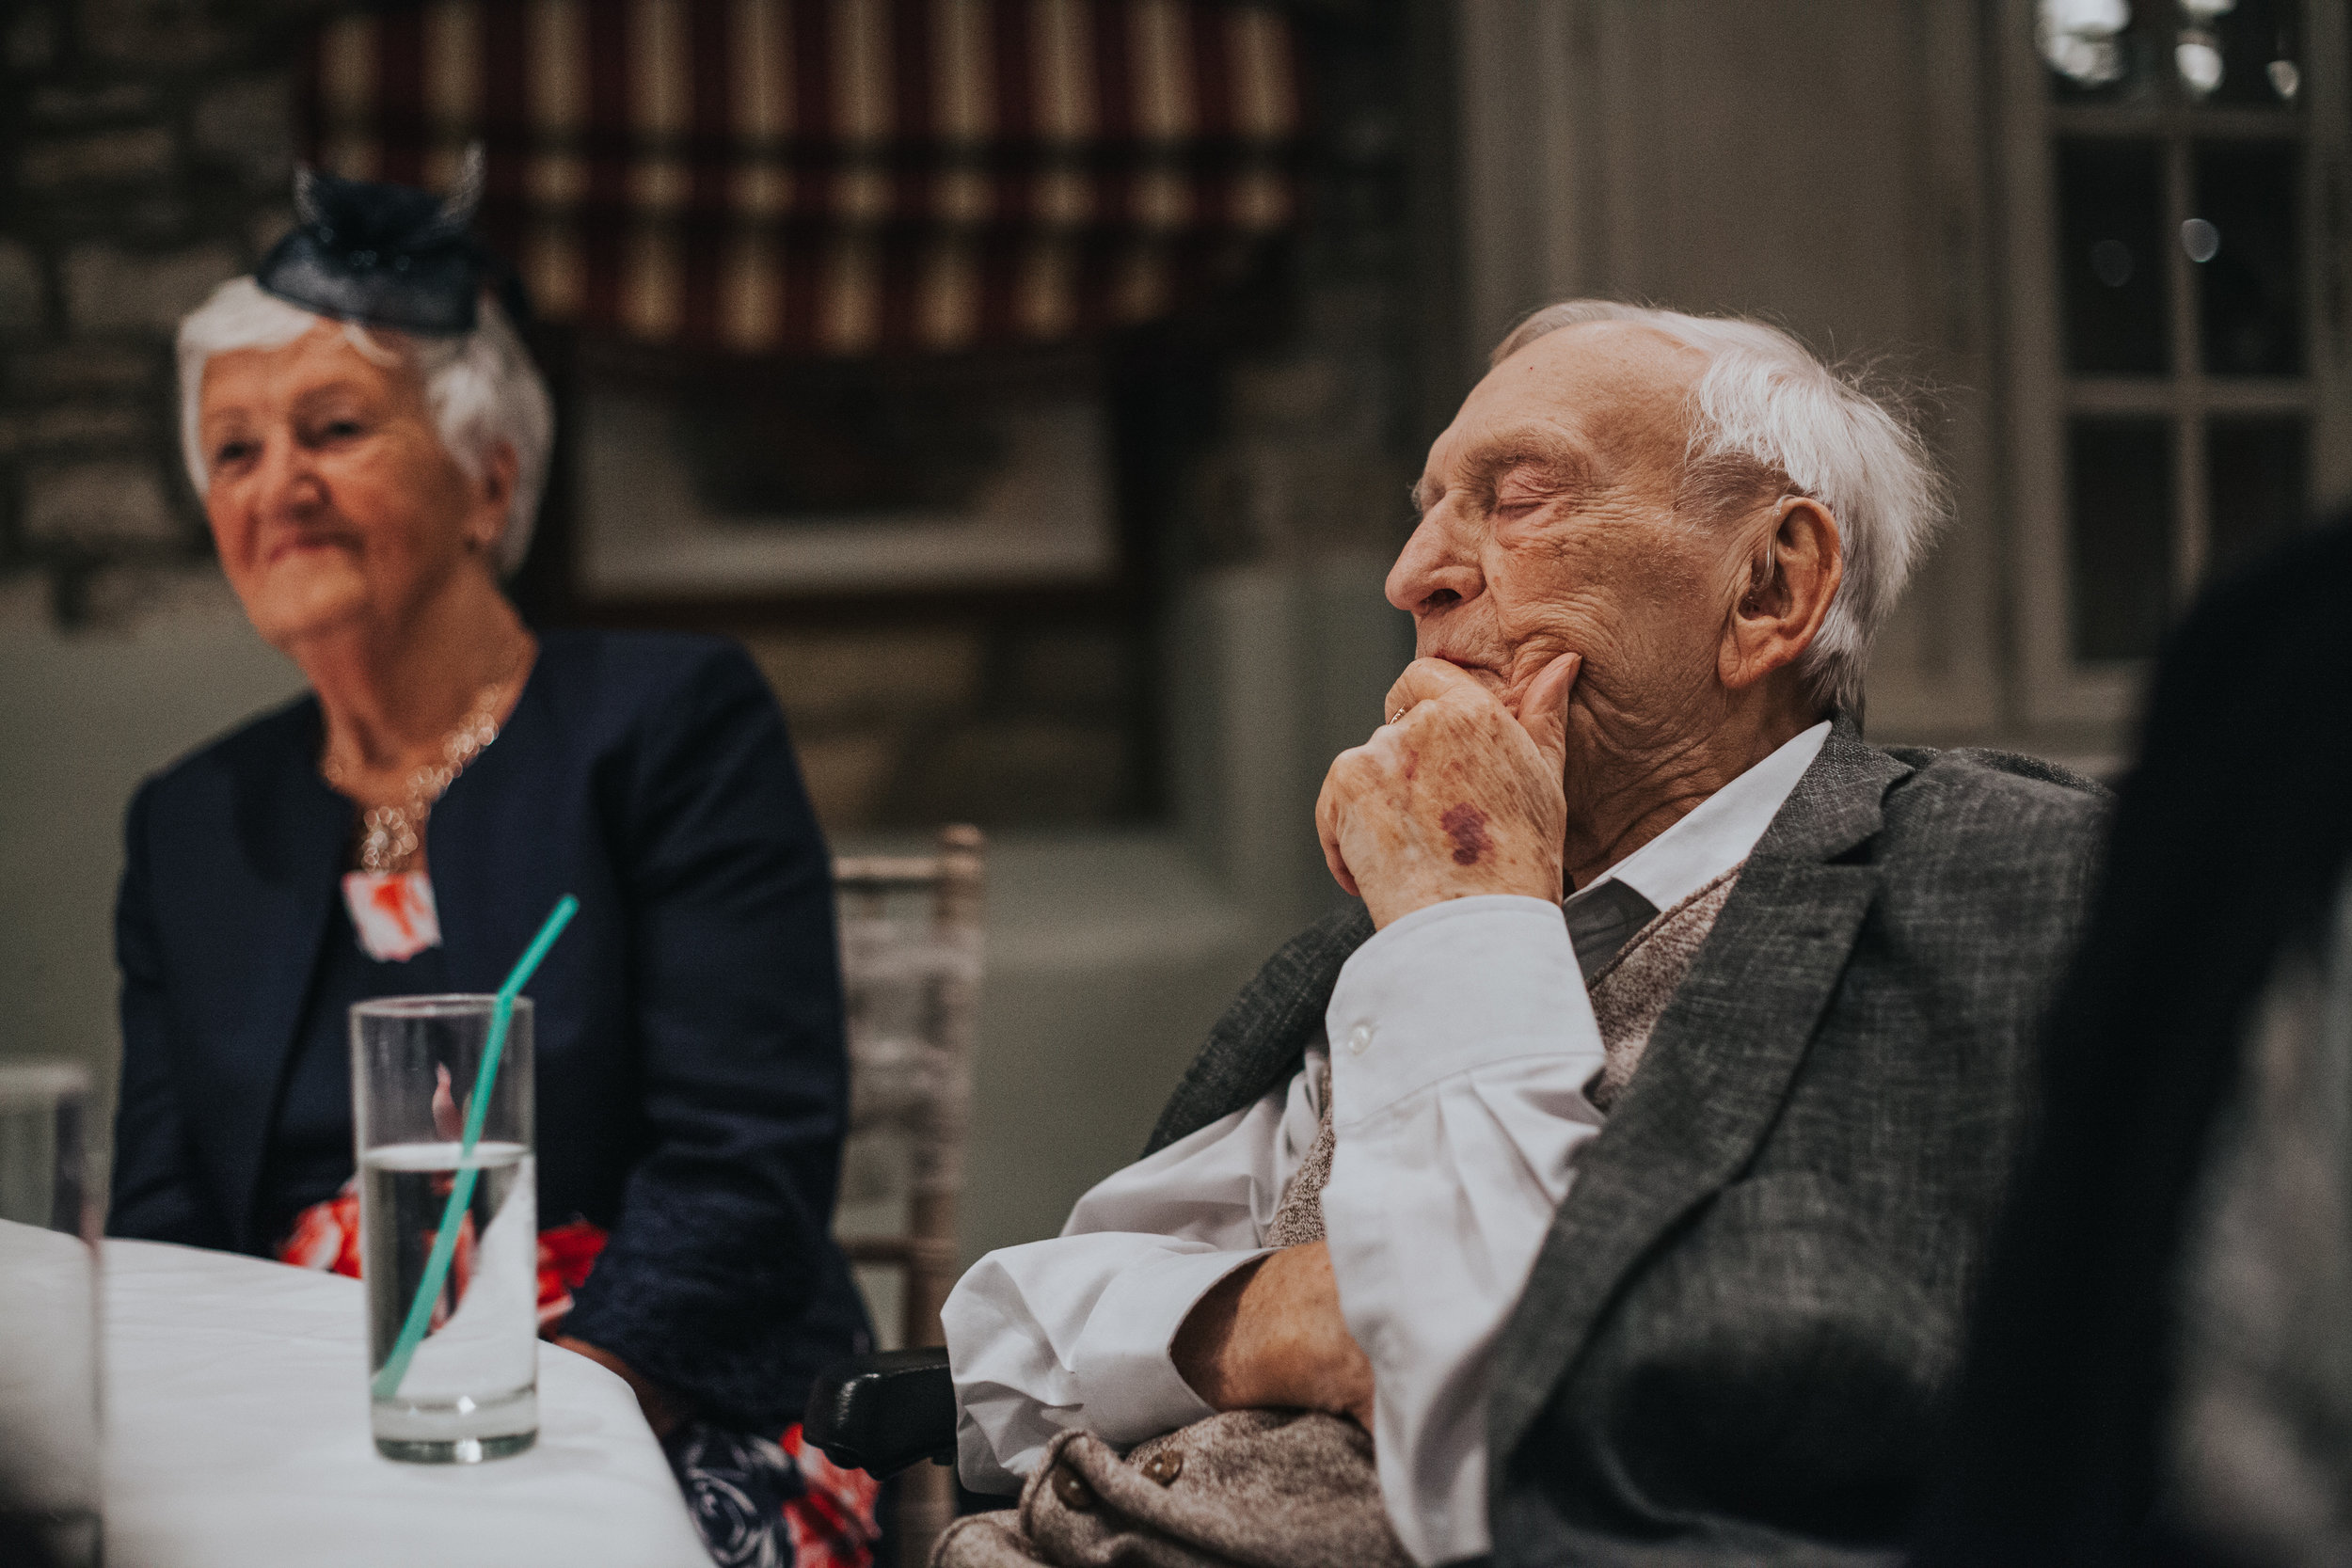 Grandad is having a sneaky sleep during the speeches.